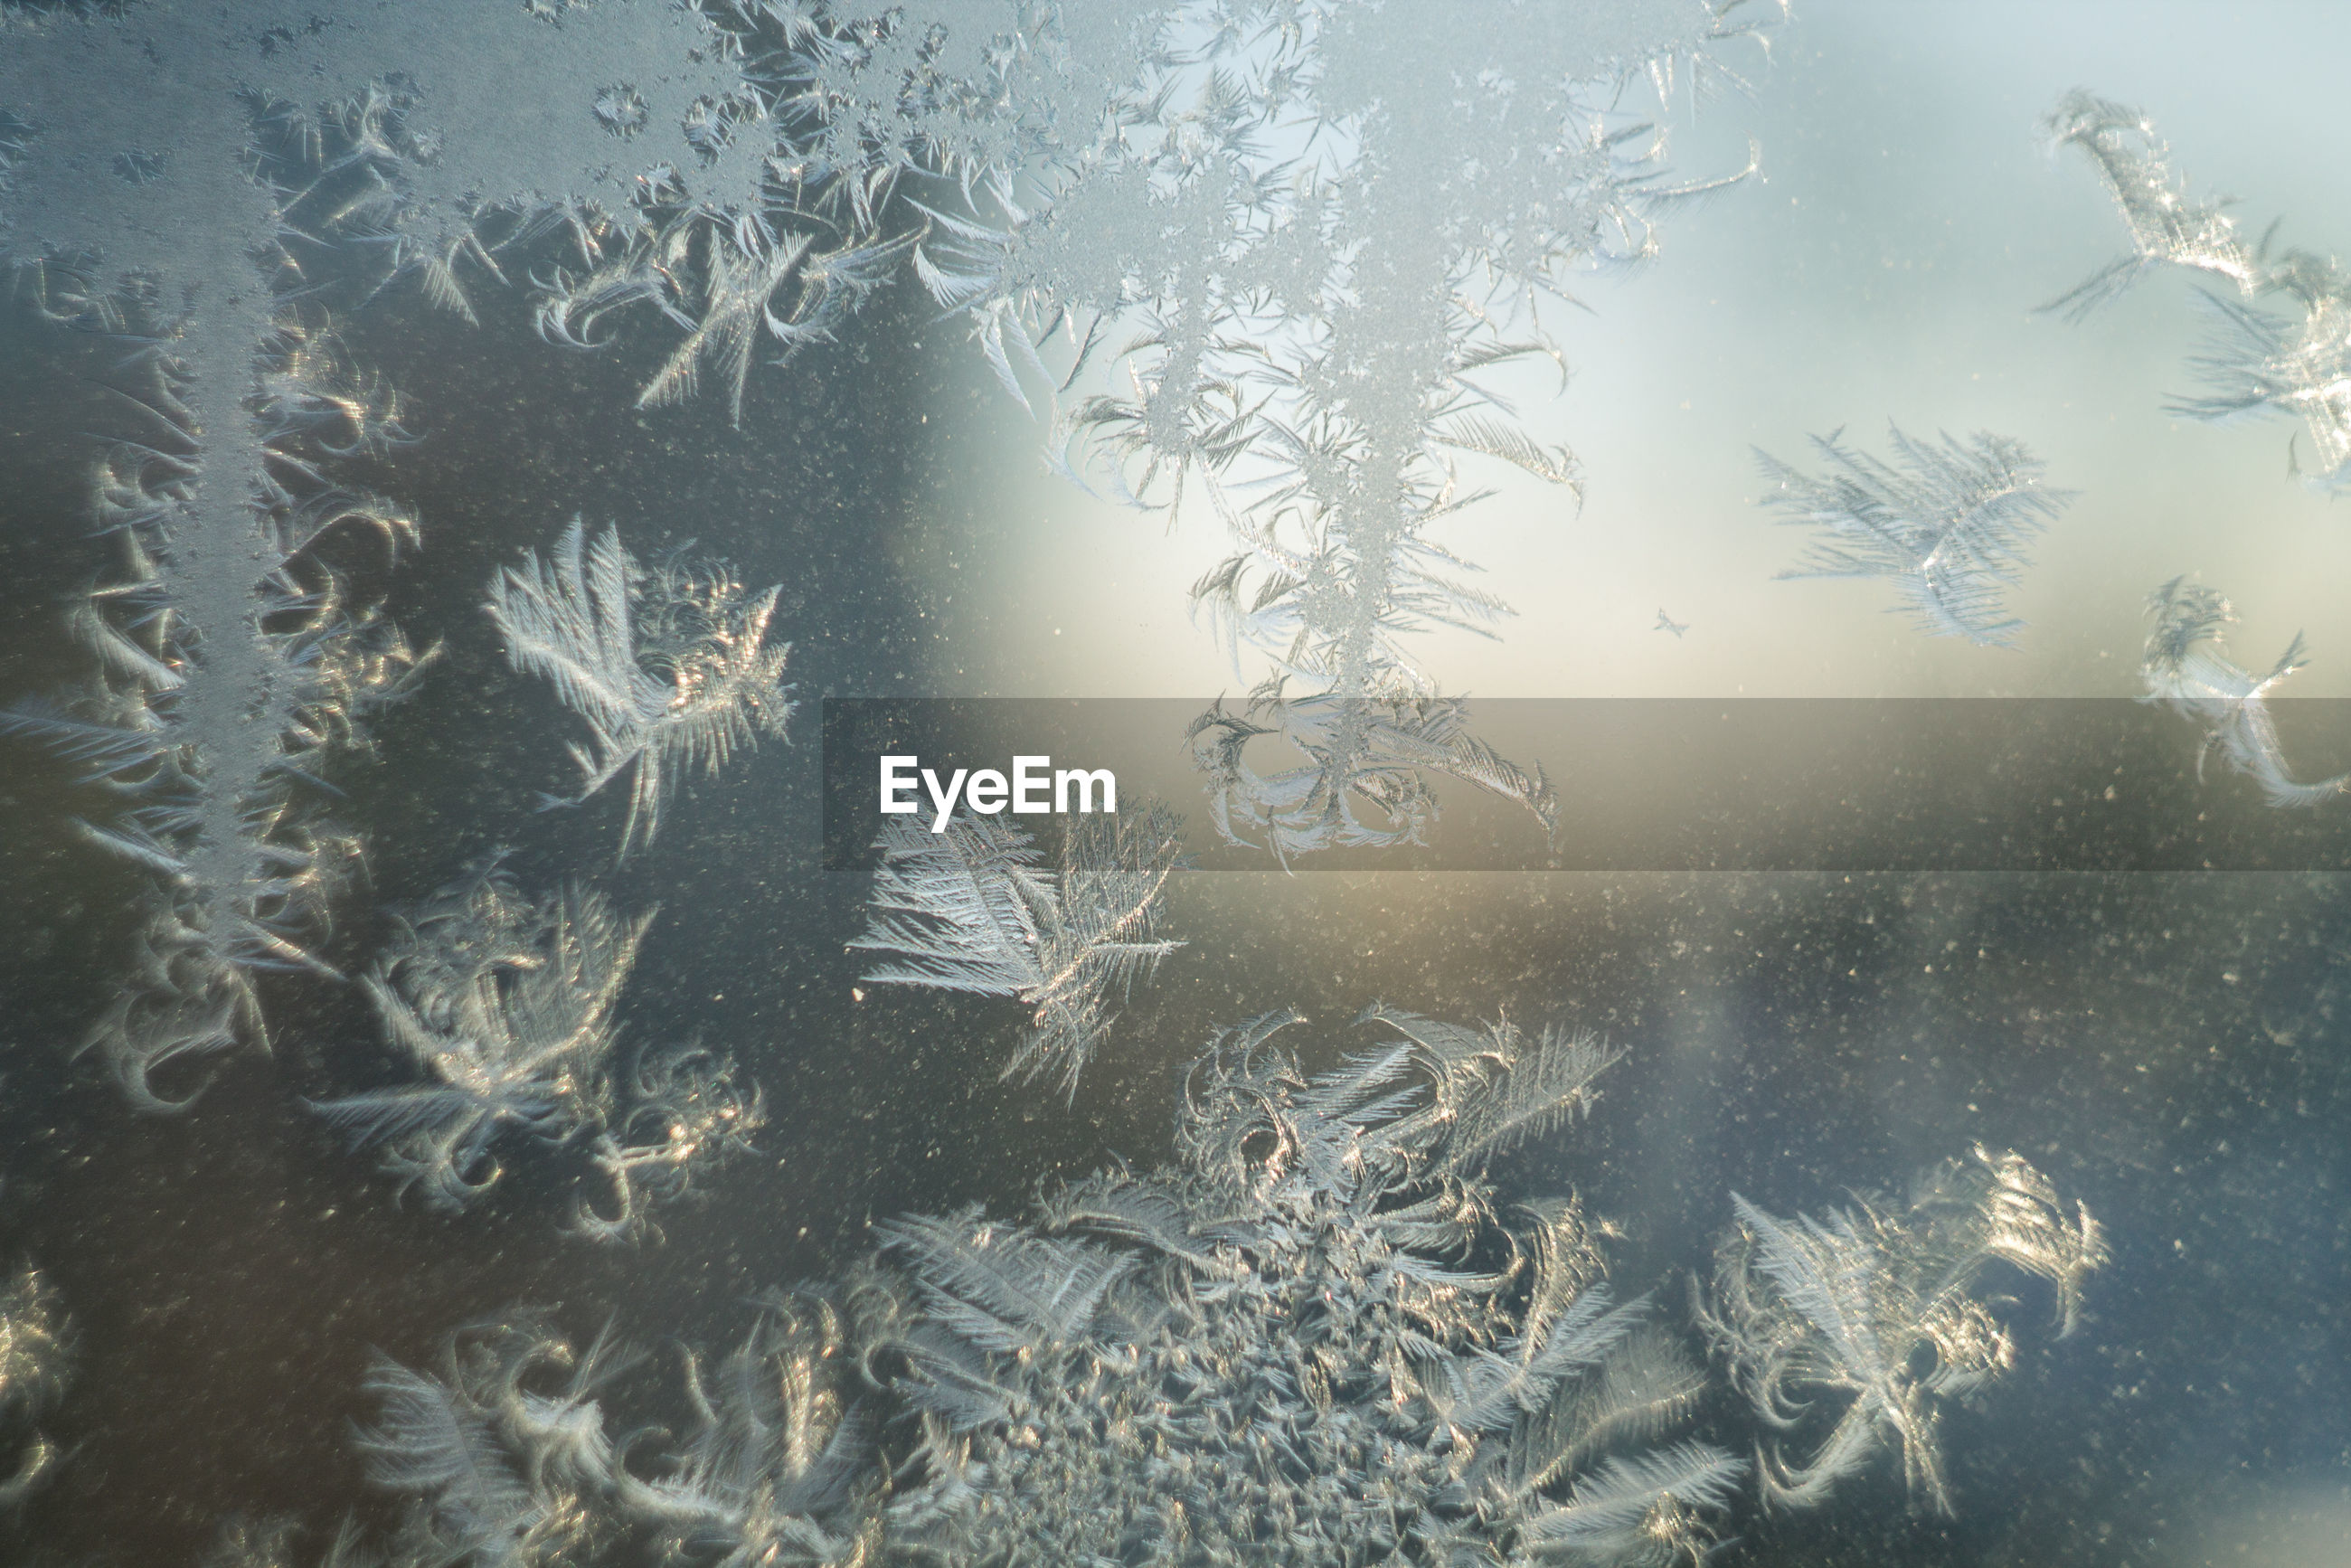 Close-up of snowflakes on glass